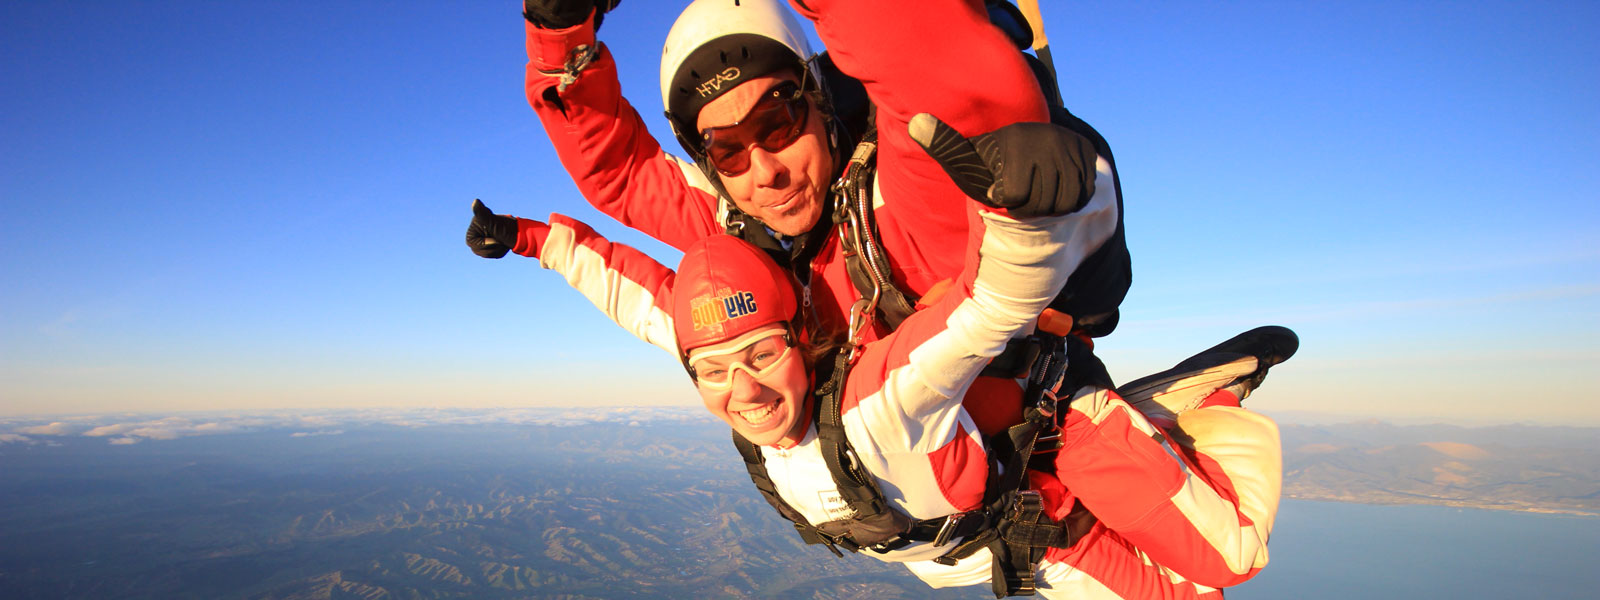 two people mid-skydive